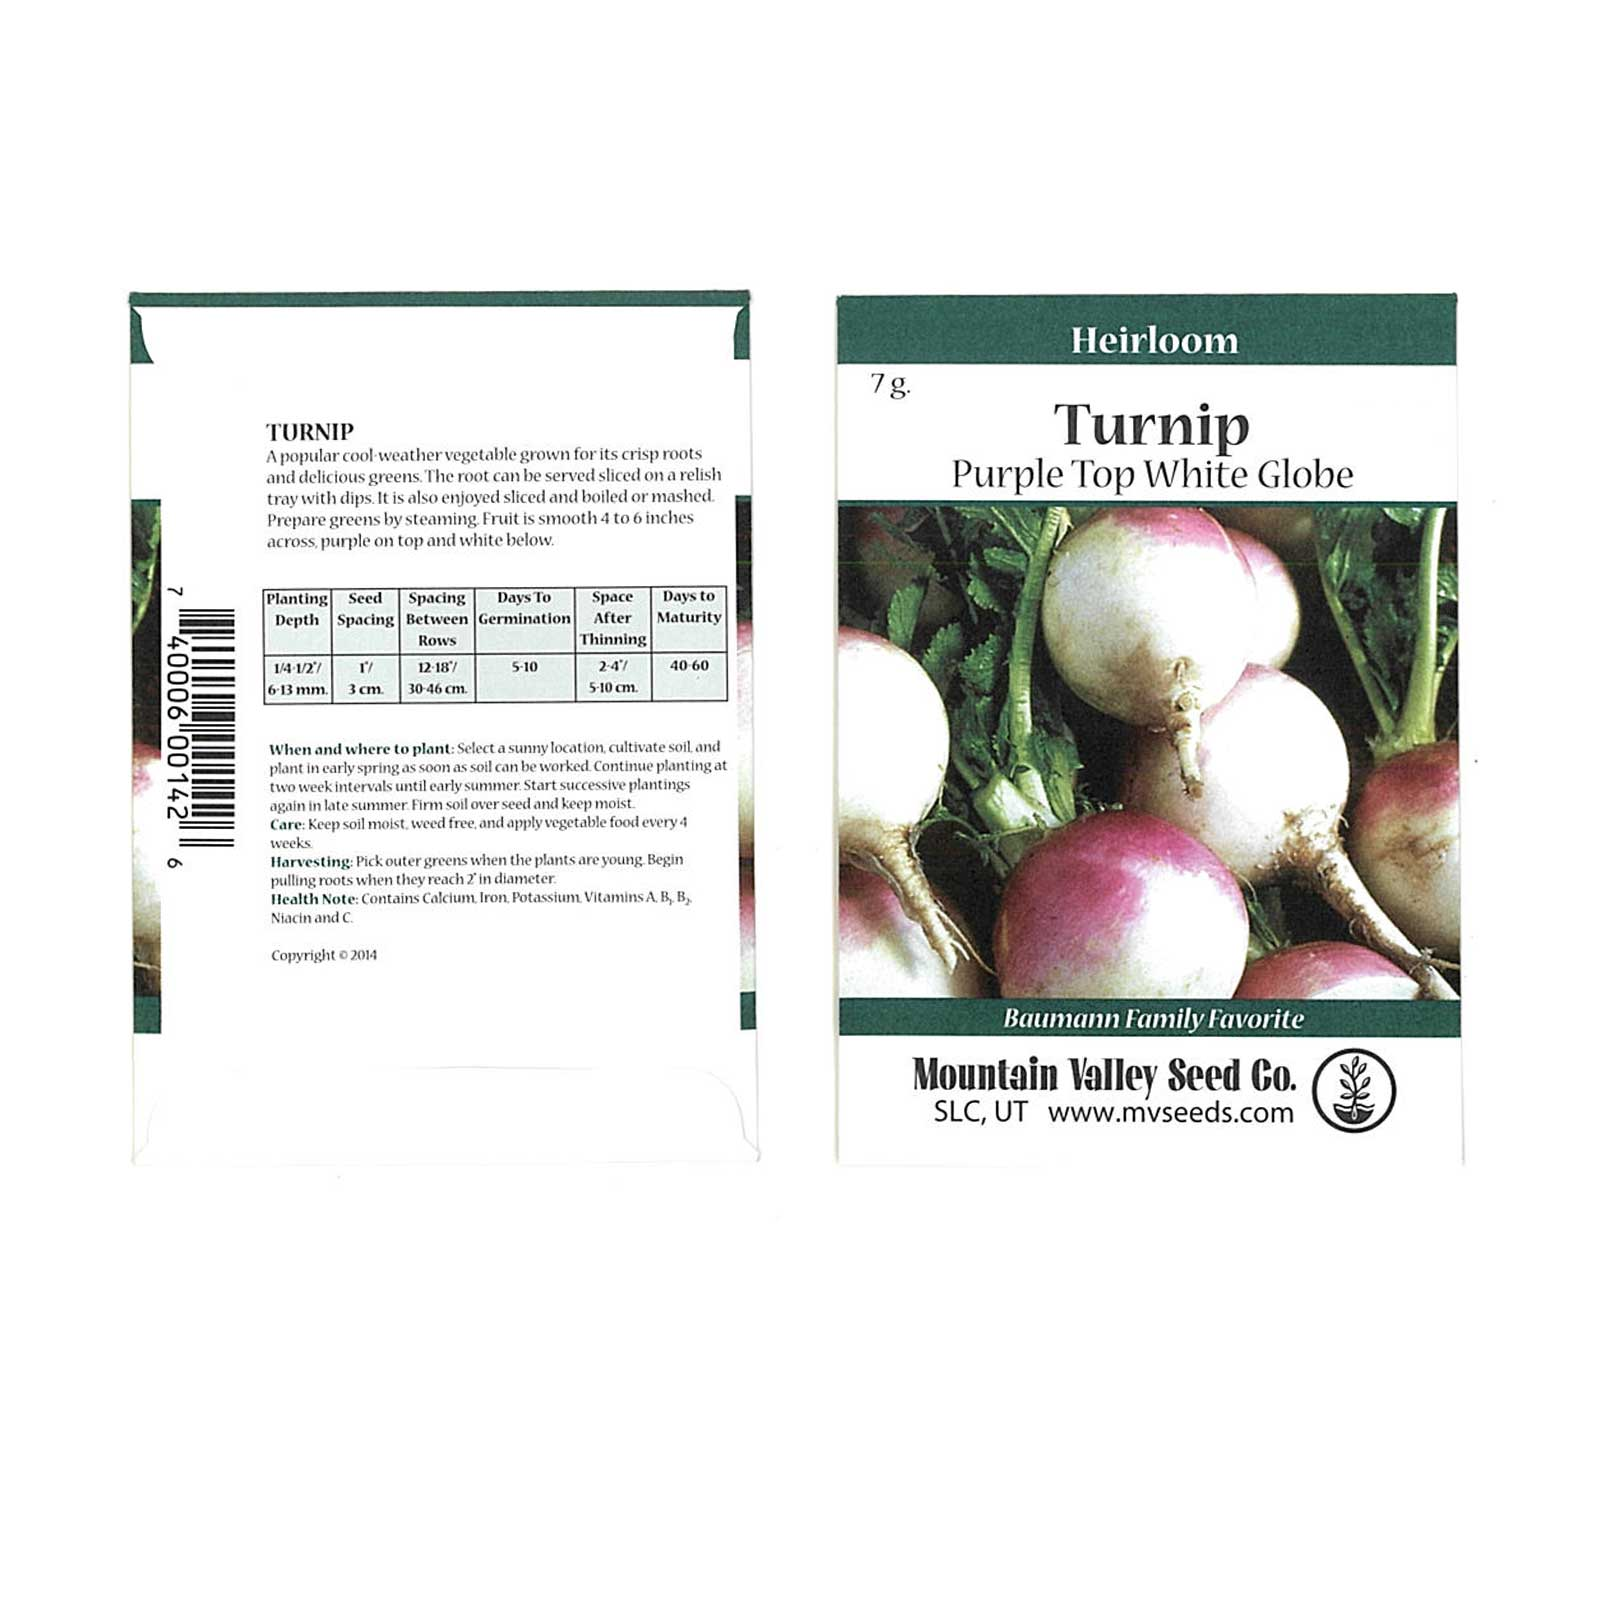 1000 SEEDS NON-GMO Purple Top White Globe Turnip Seeds